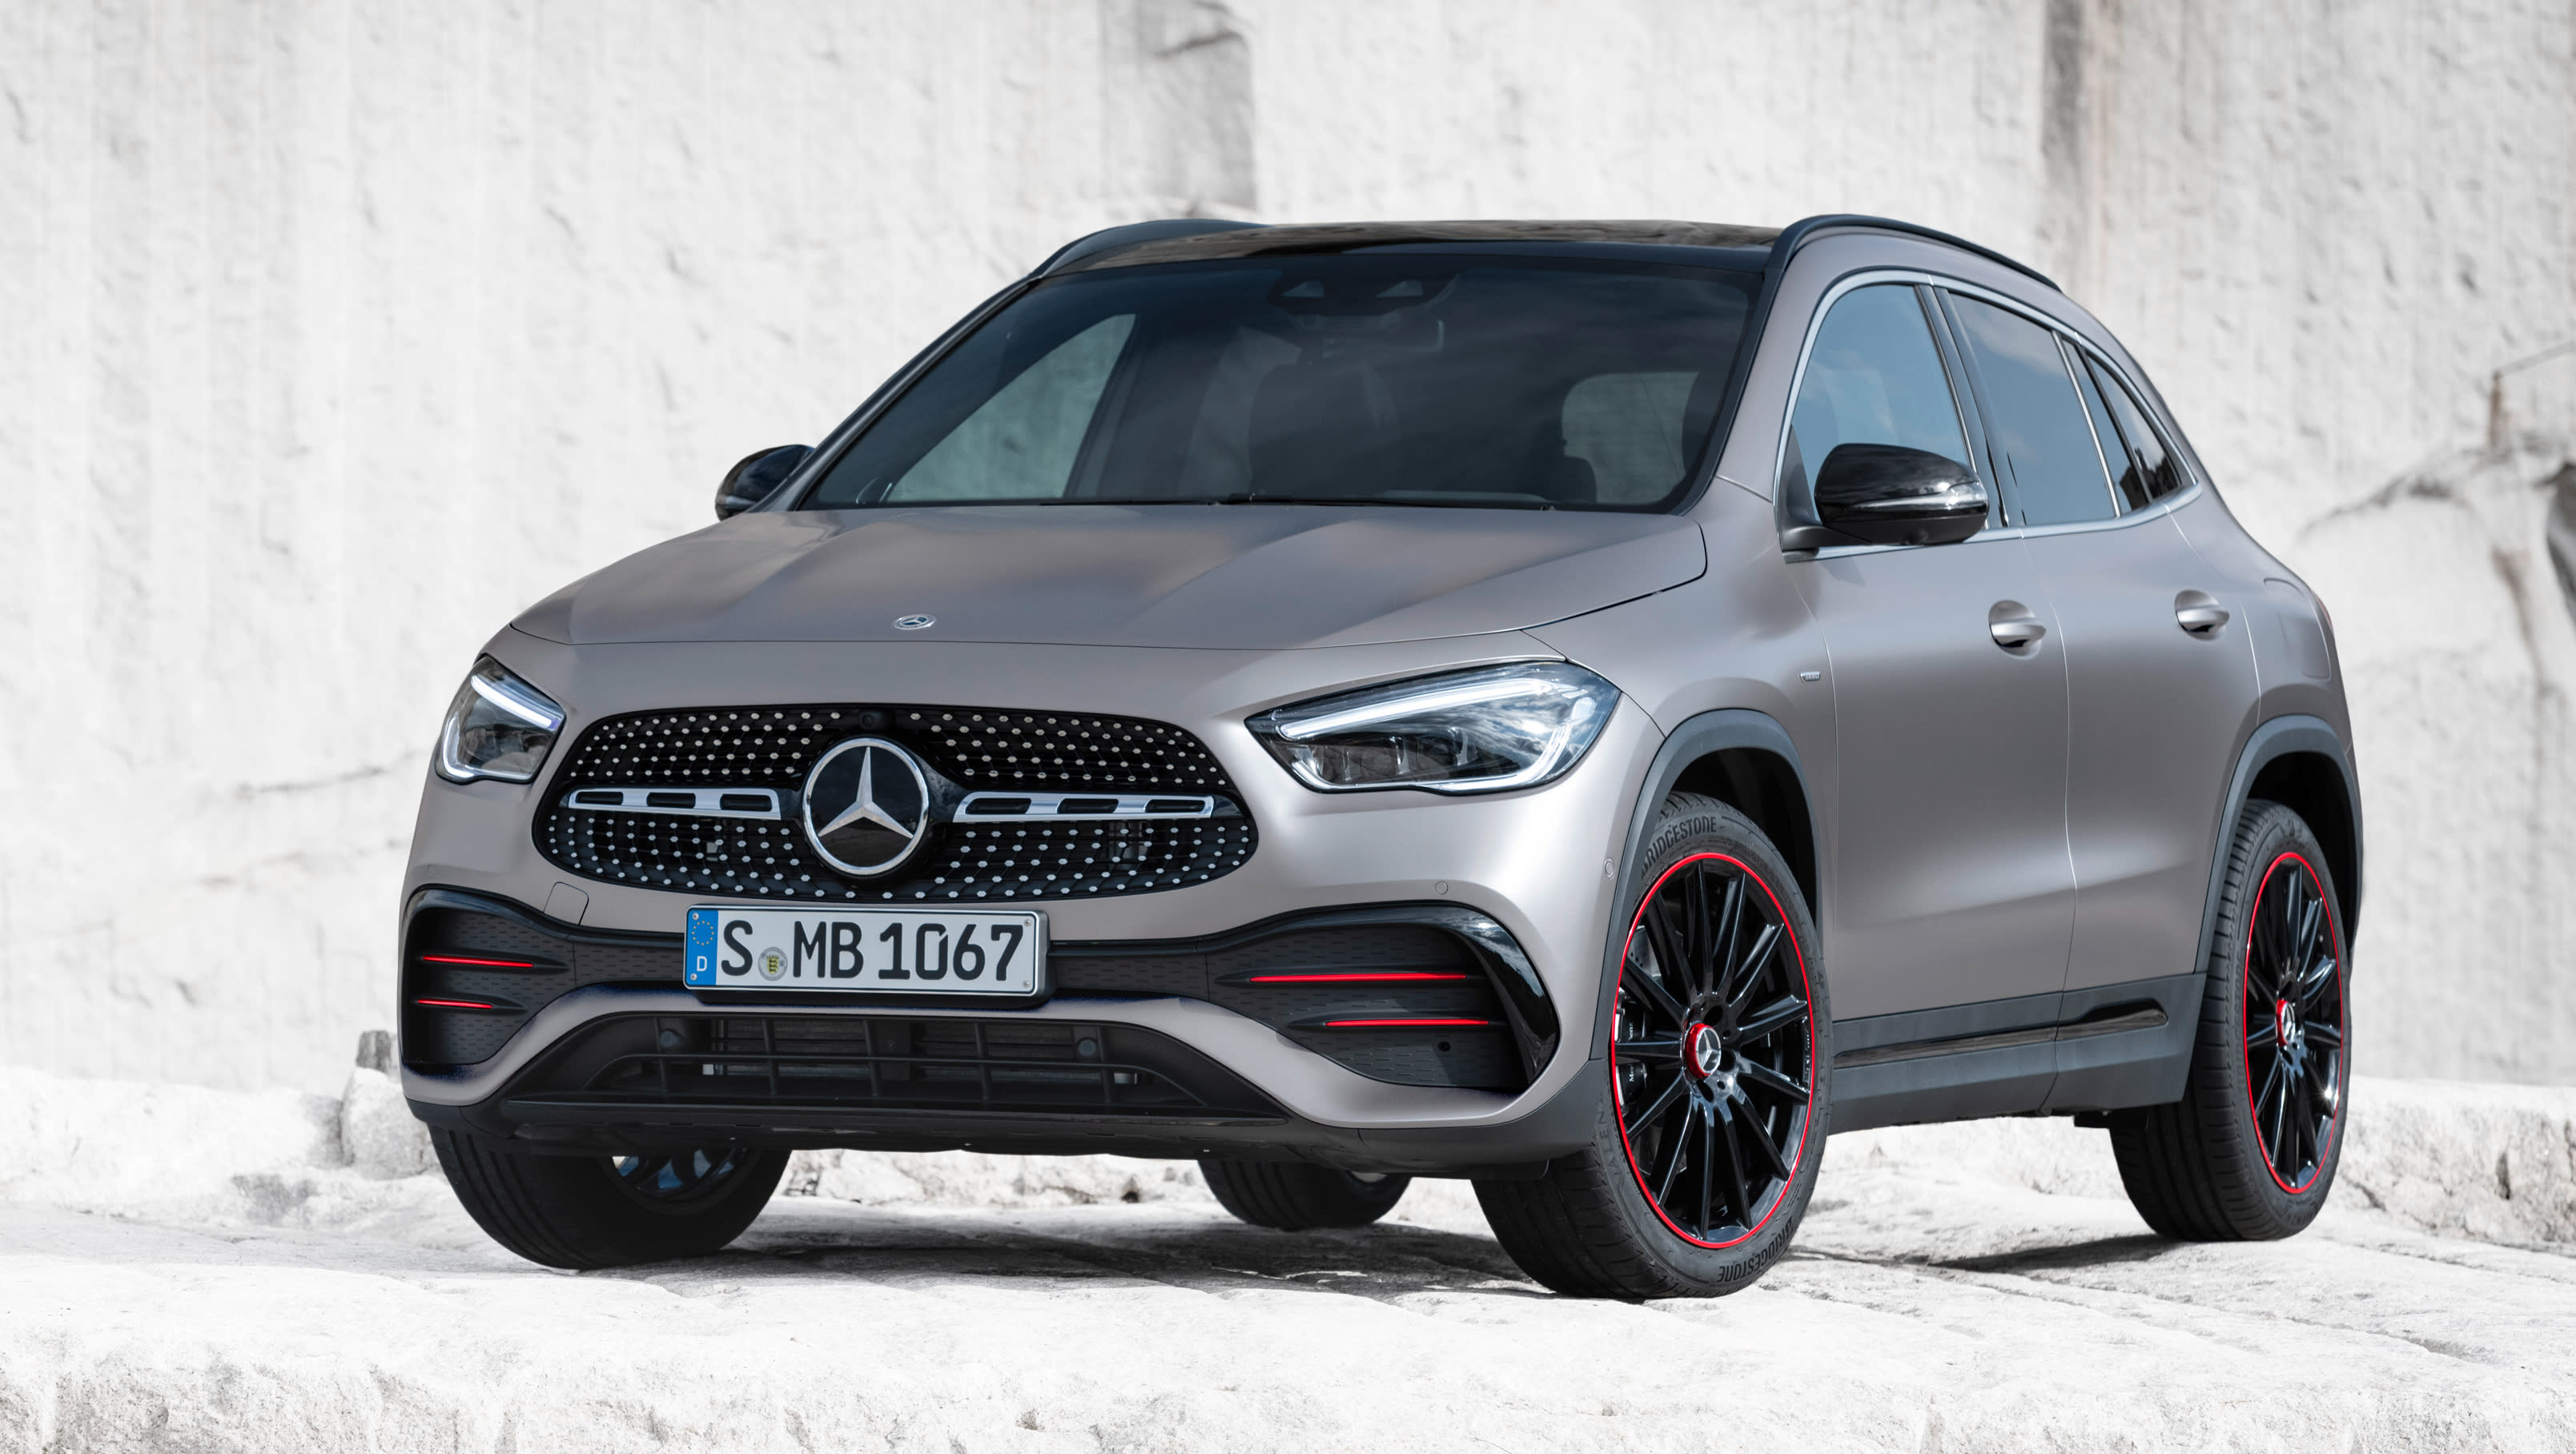 New Mercedes Benz Gla 2020 Small Suv Range Detailed Ahead Of Q3